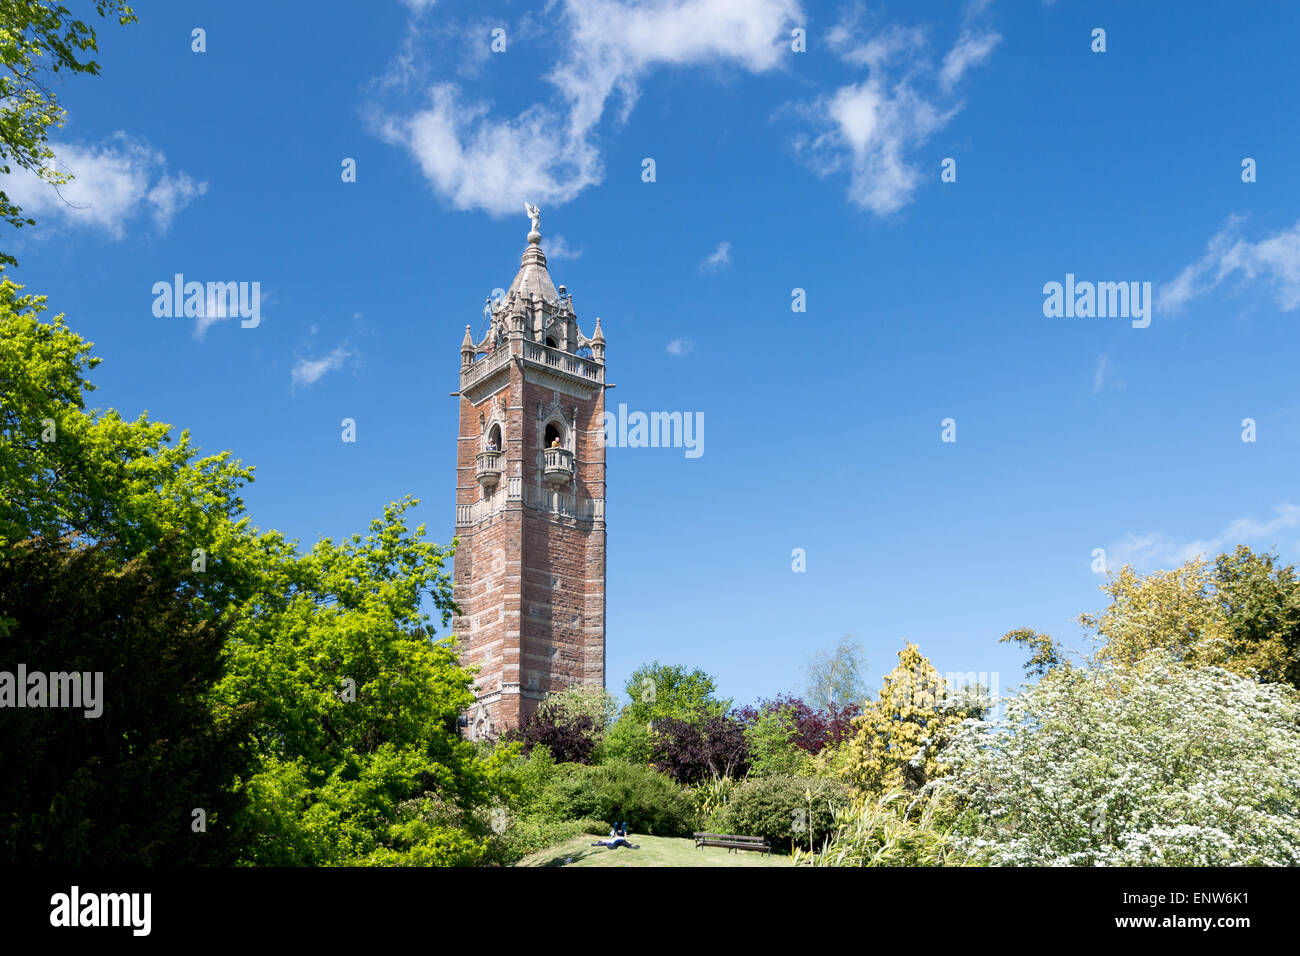 Cabot Tower, in Bristol United Kingdom - Stock Image